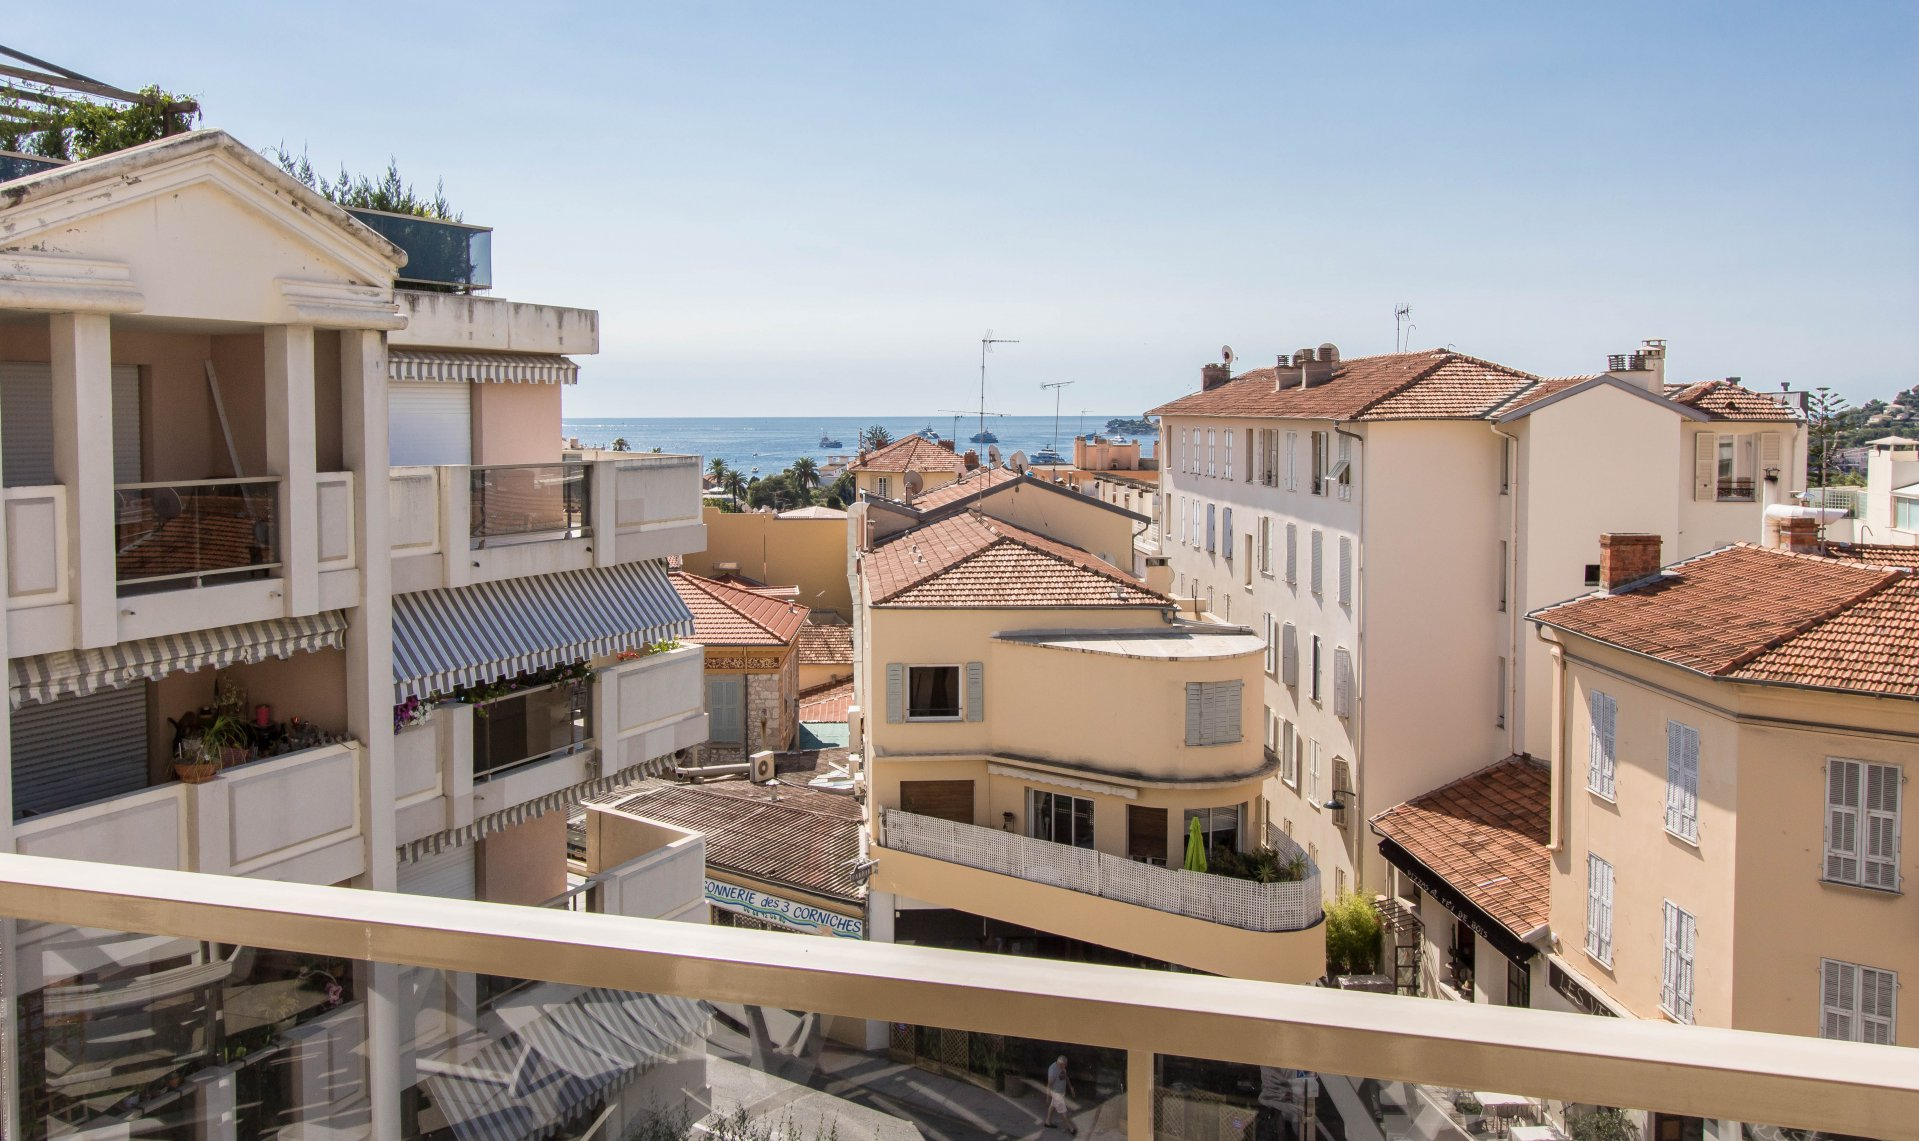 3 bedrooms apartment for sale in Beaulieu sur Mer